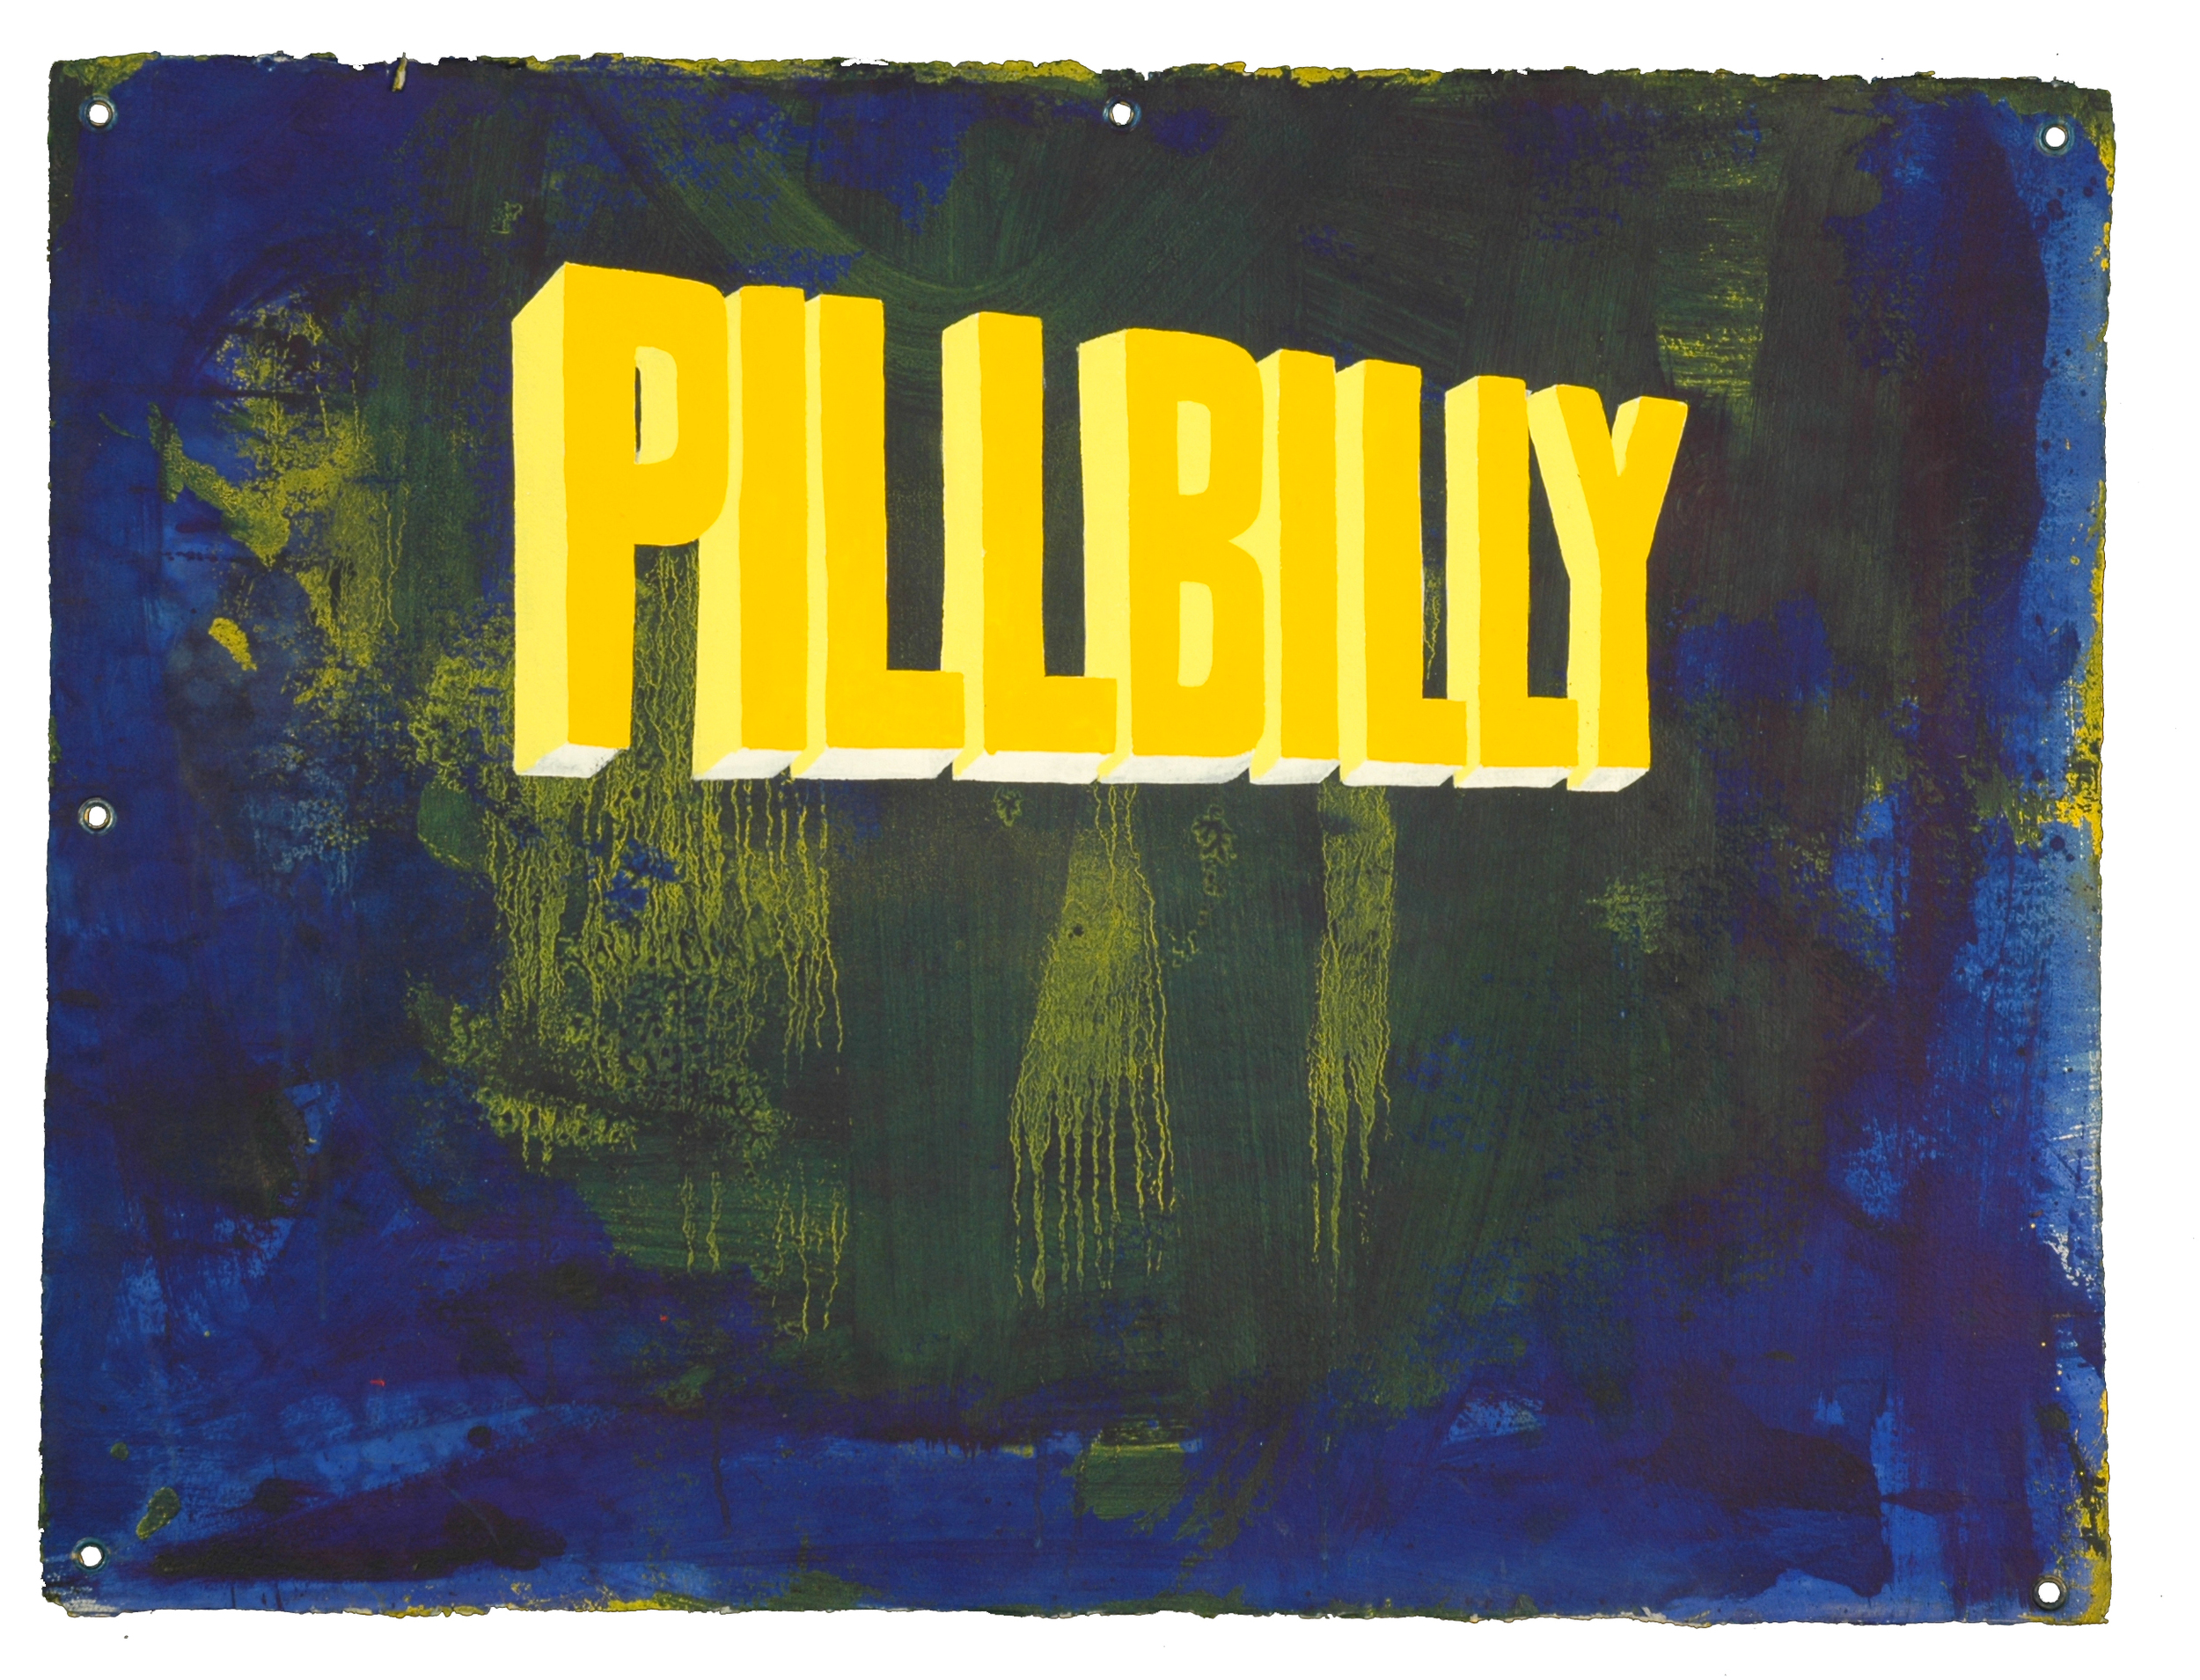 WAYNE WHITE, PILLBILLY, 2007, acrylic on paper, 22.5 x 30 inches